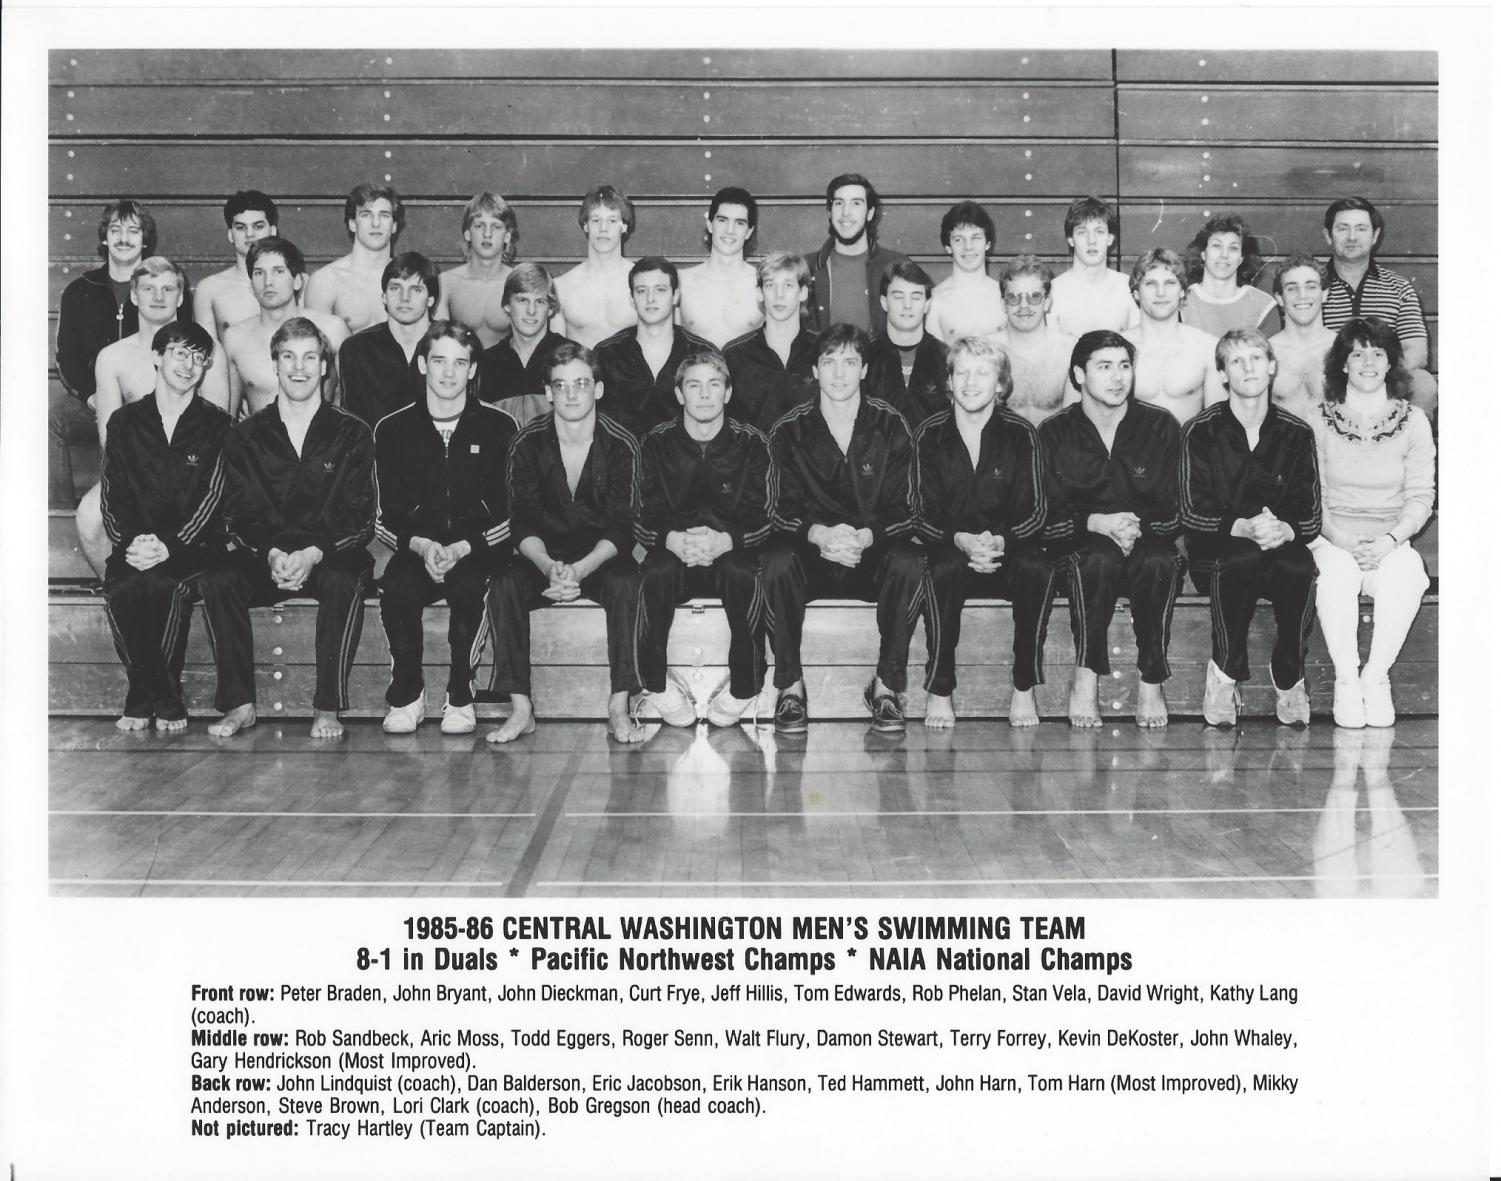 The 1986 NAIA National Championship Men's Swimming Team finished their season with 381 points and eight national titles. They won three relay races and five individual titles. Stan Vela was awarded outstanding swimmer.